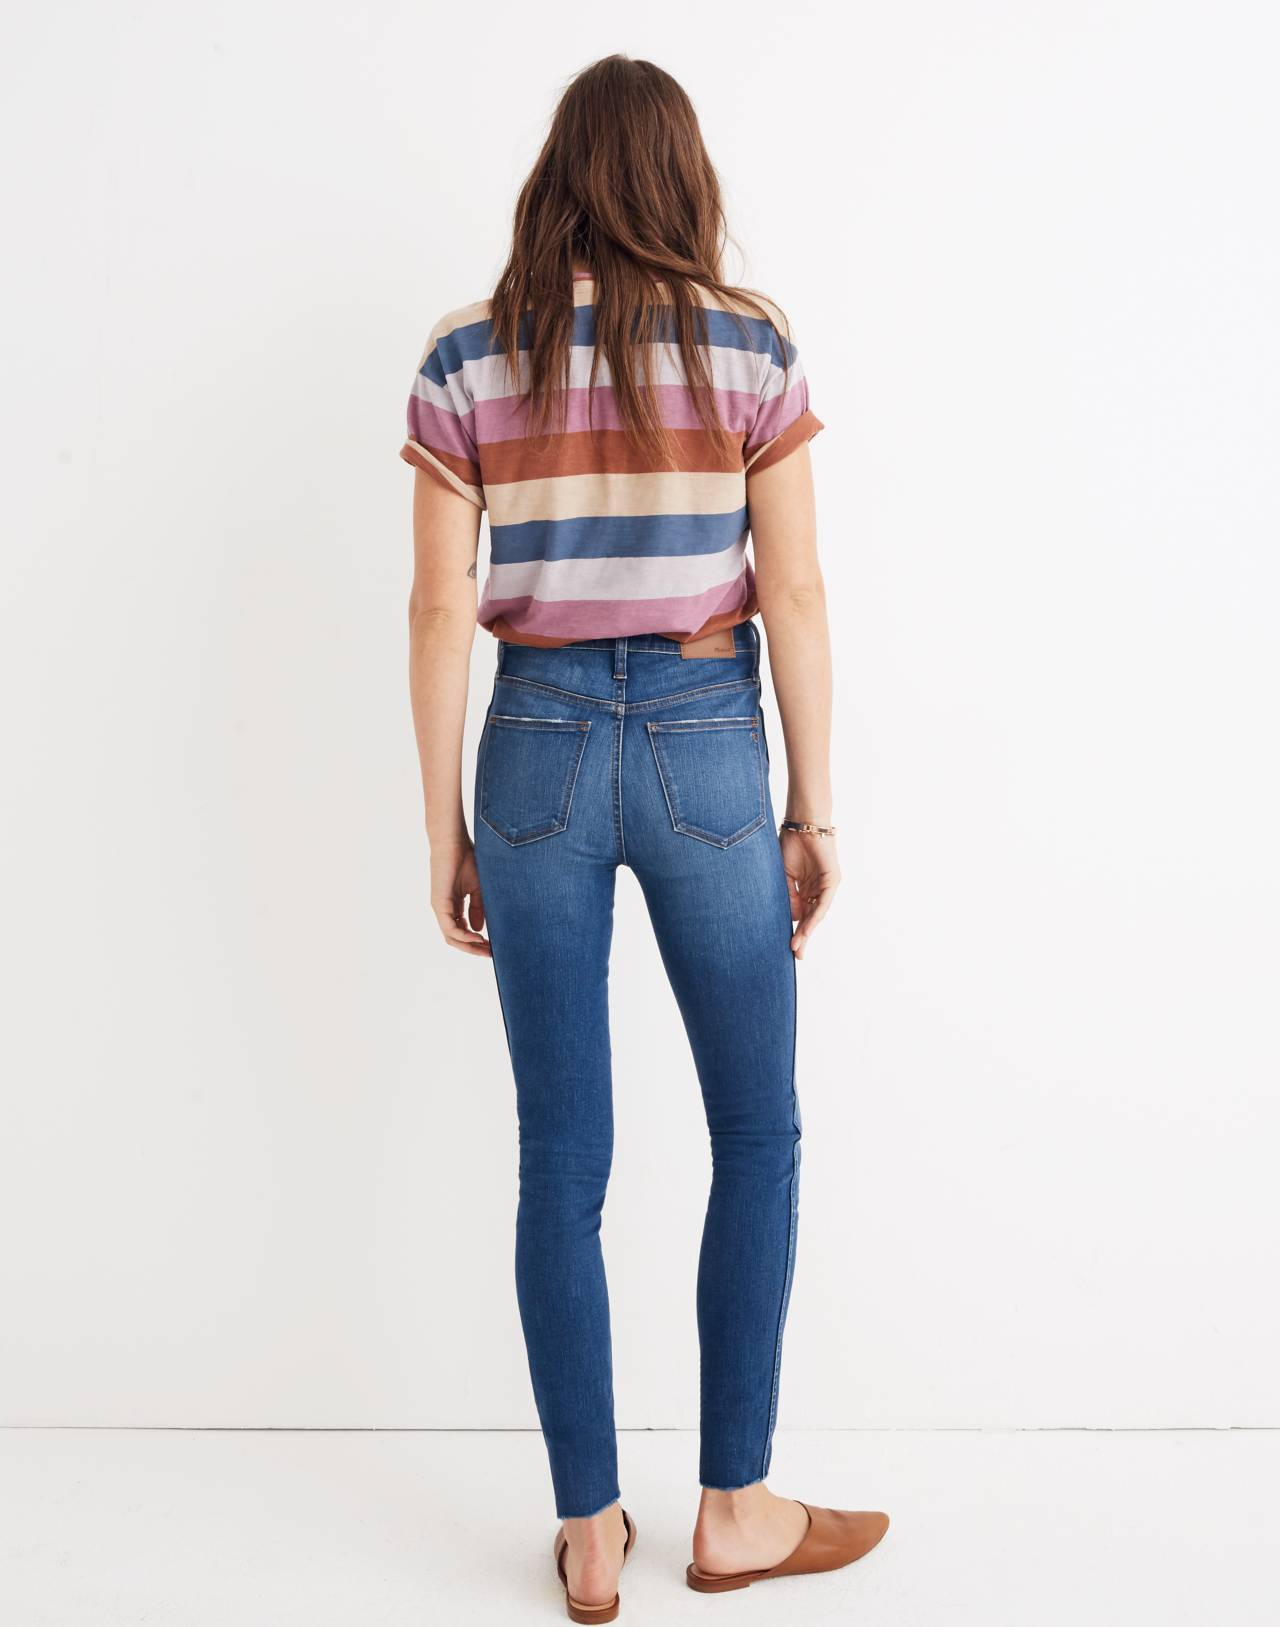 "Taller 10"" High-Rise Skinny Jeans in Hanna Wash in hanna wash image 3"